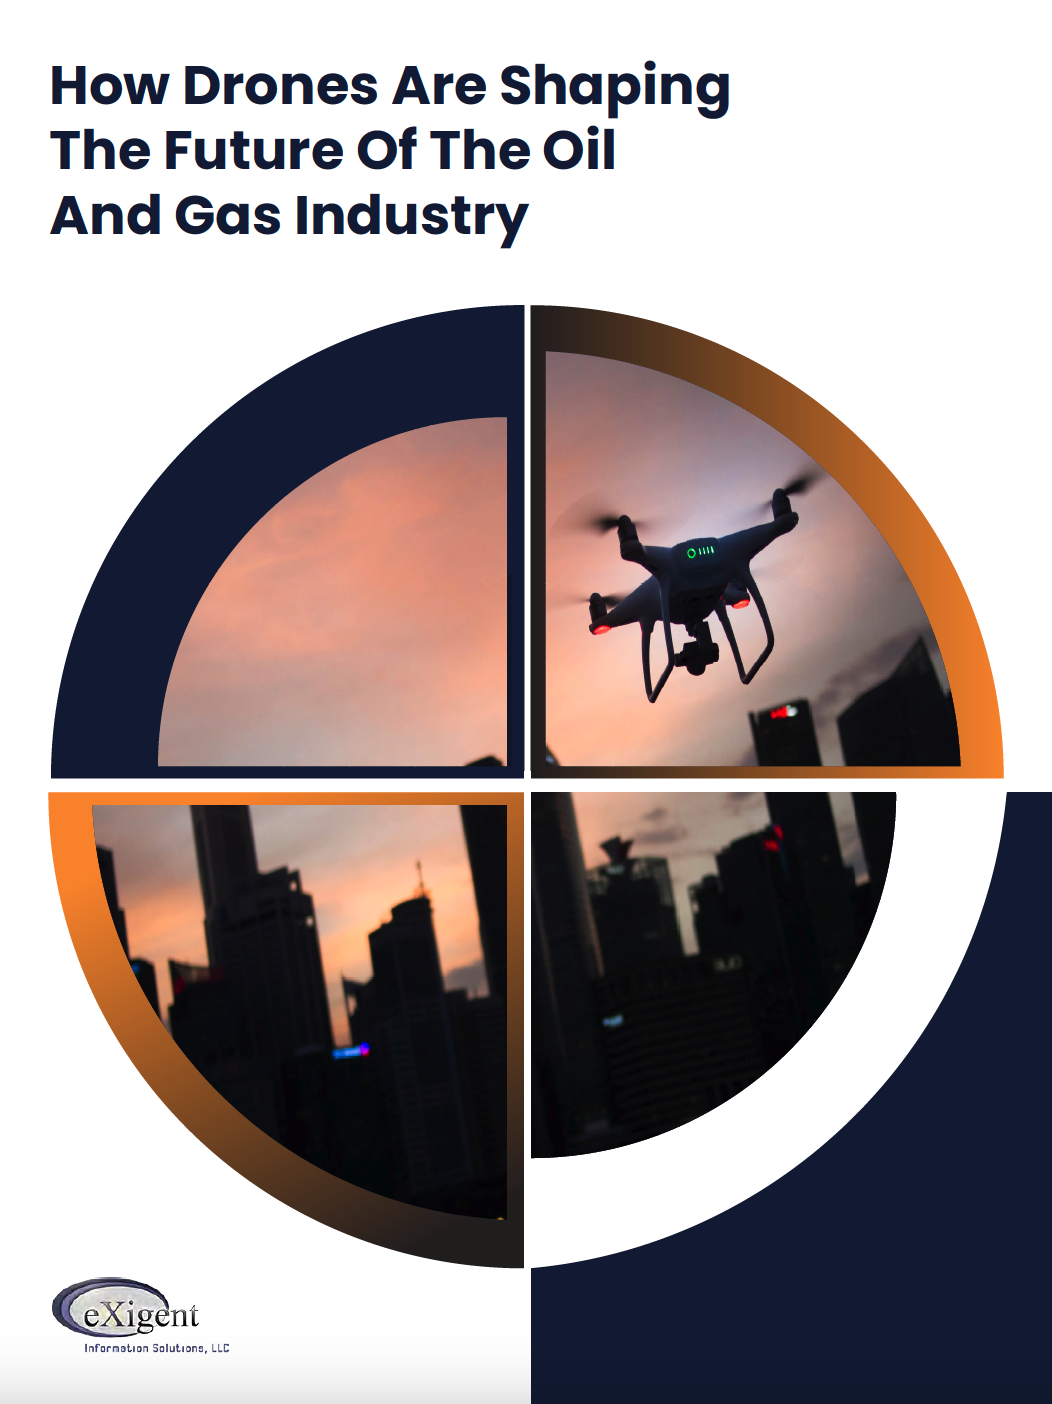 How Drones are shaping the future of the oil and gas industrry